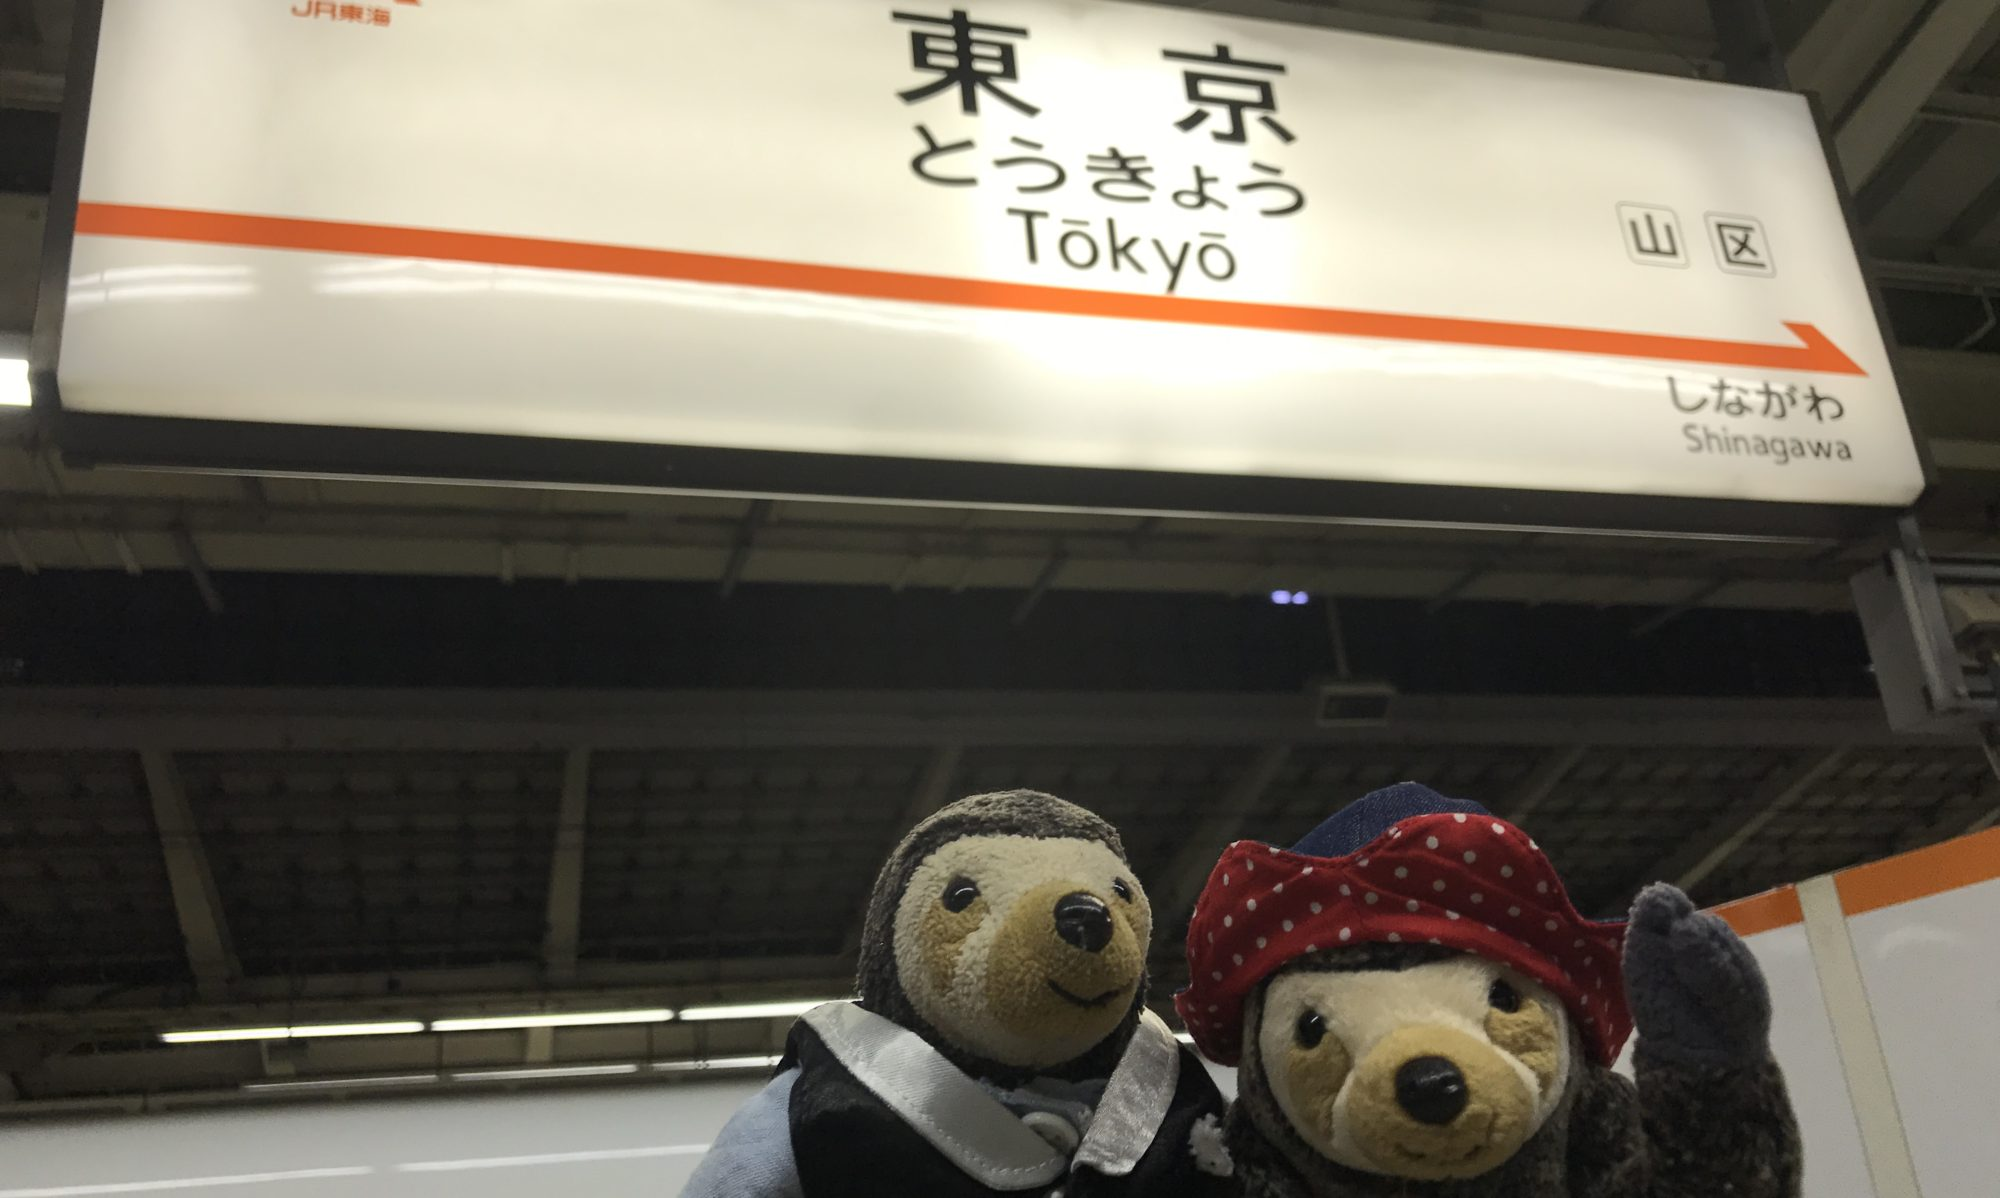 Unagi Travel - Japan Travel Agency for Stuffed Animals